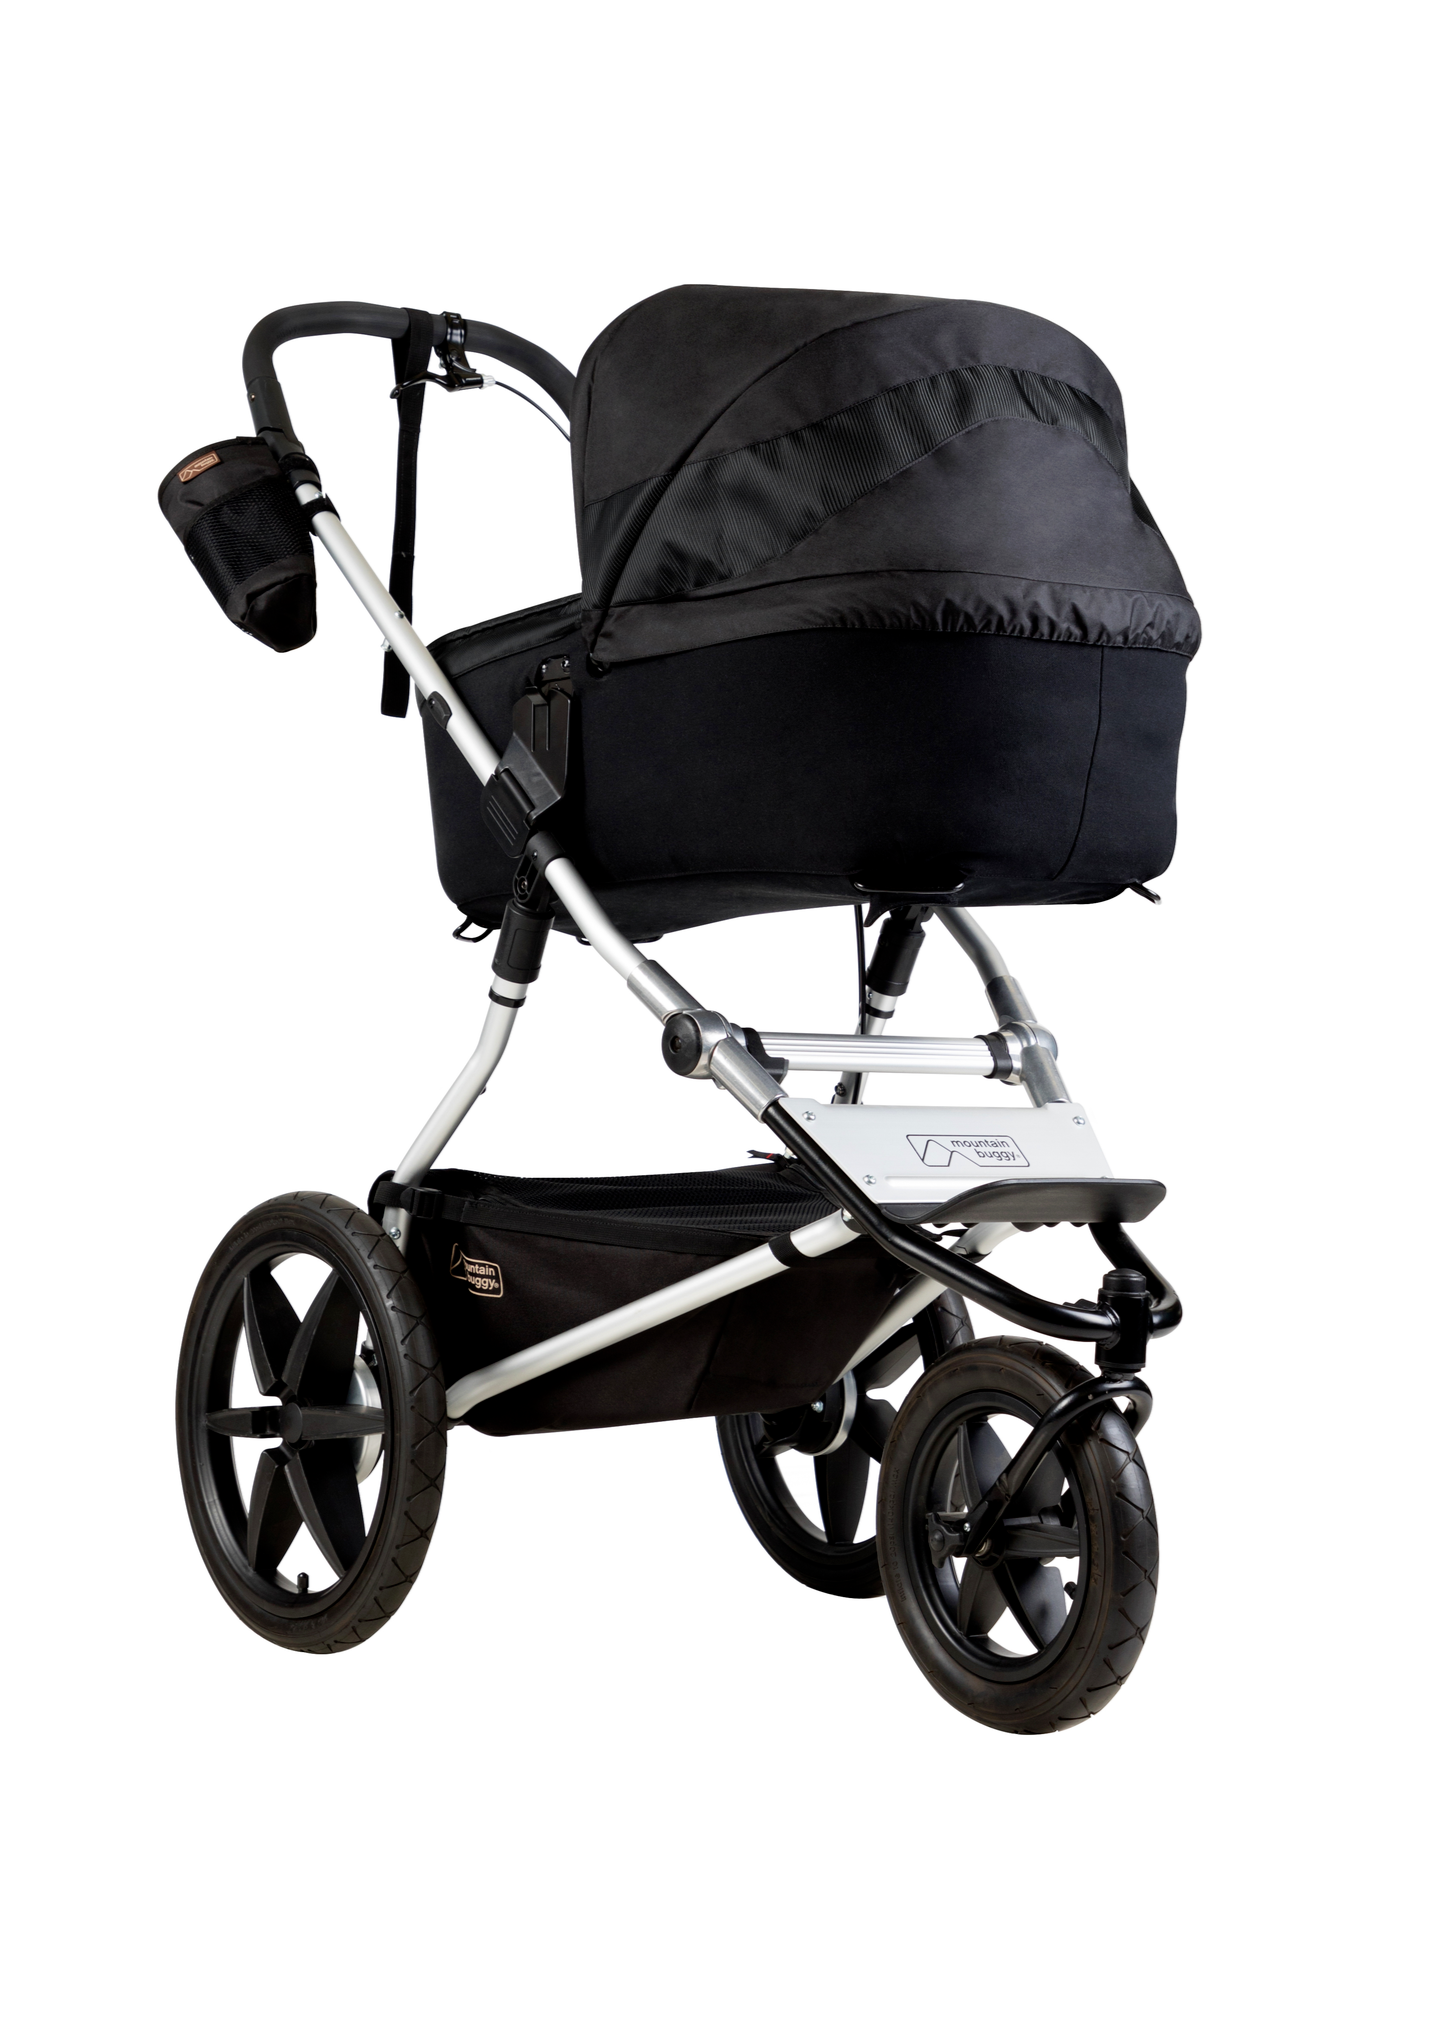 Mountain Buggy Carrycot plus for Urban Jungle Terrain and +one in Onyx